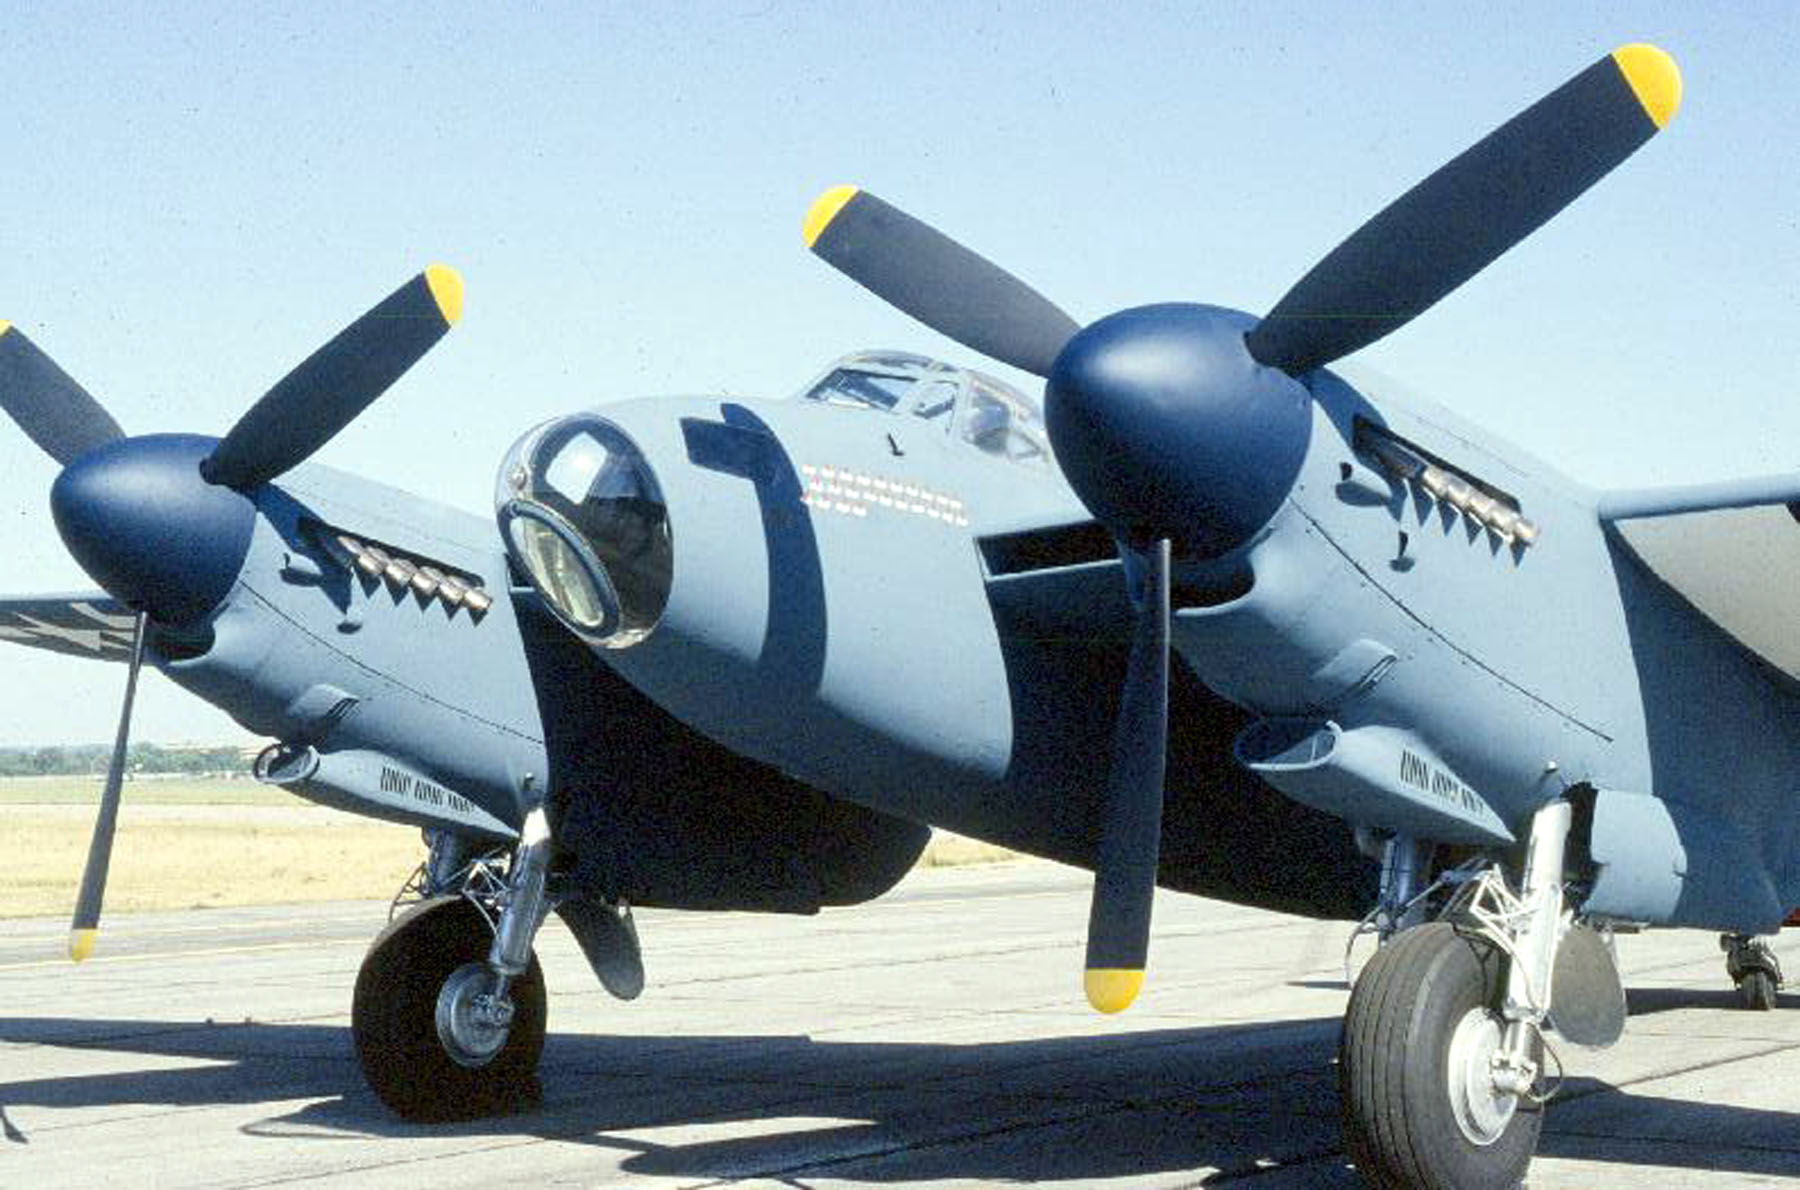 http://upload.wikimedia.org/wikipedia/commons/8/8d/De_Havilland_DH_98_Mosquito_USAF.jpg